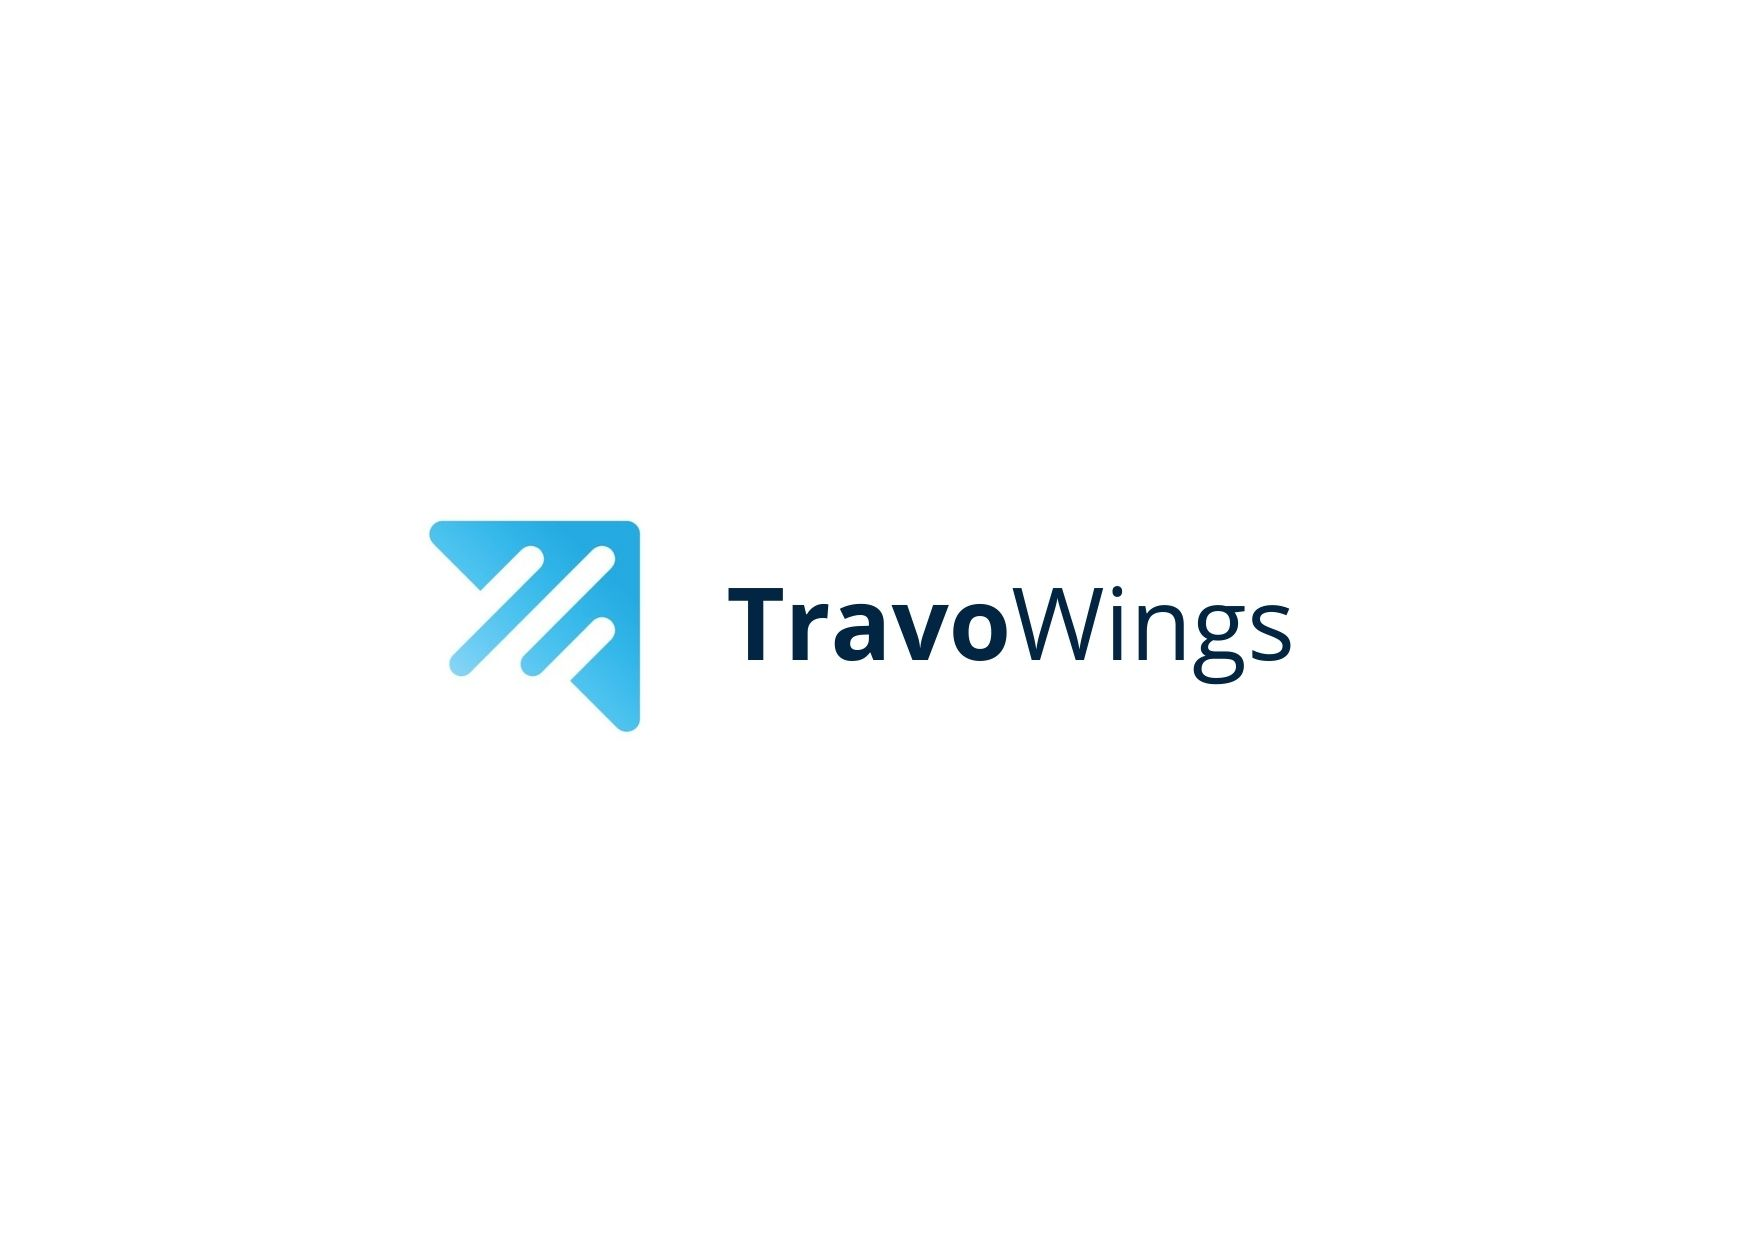 TravoWings